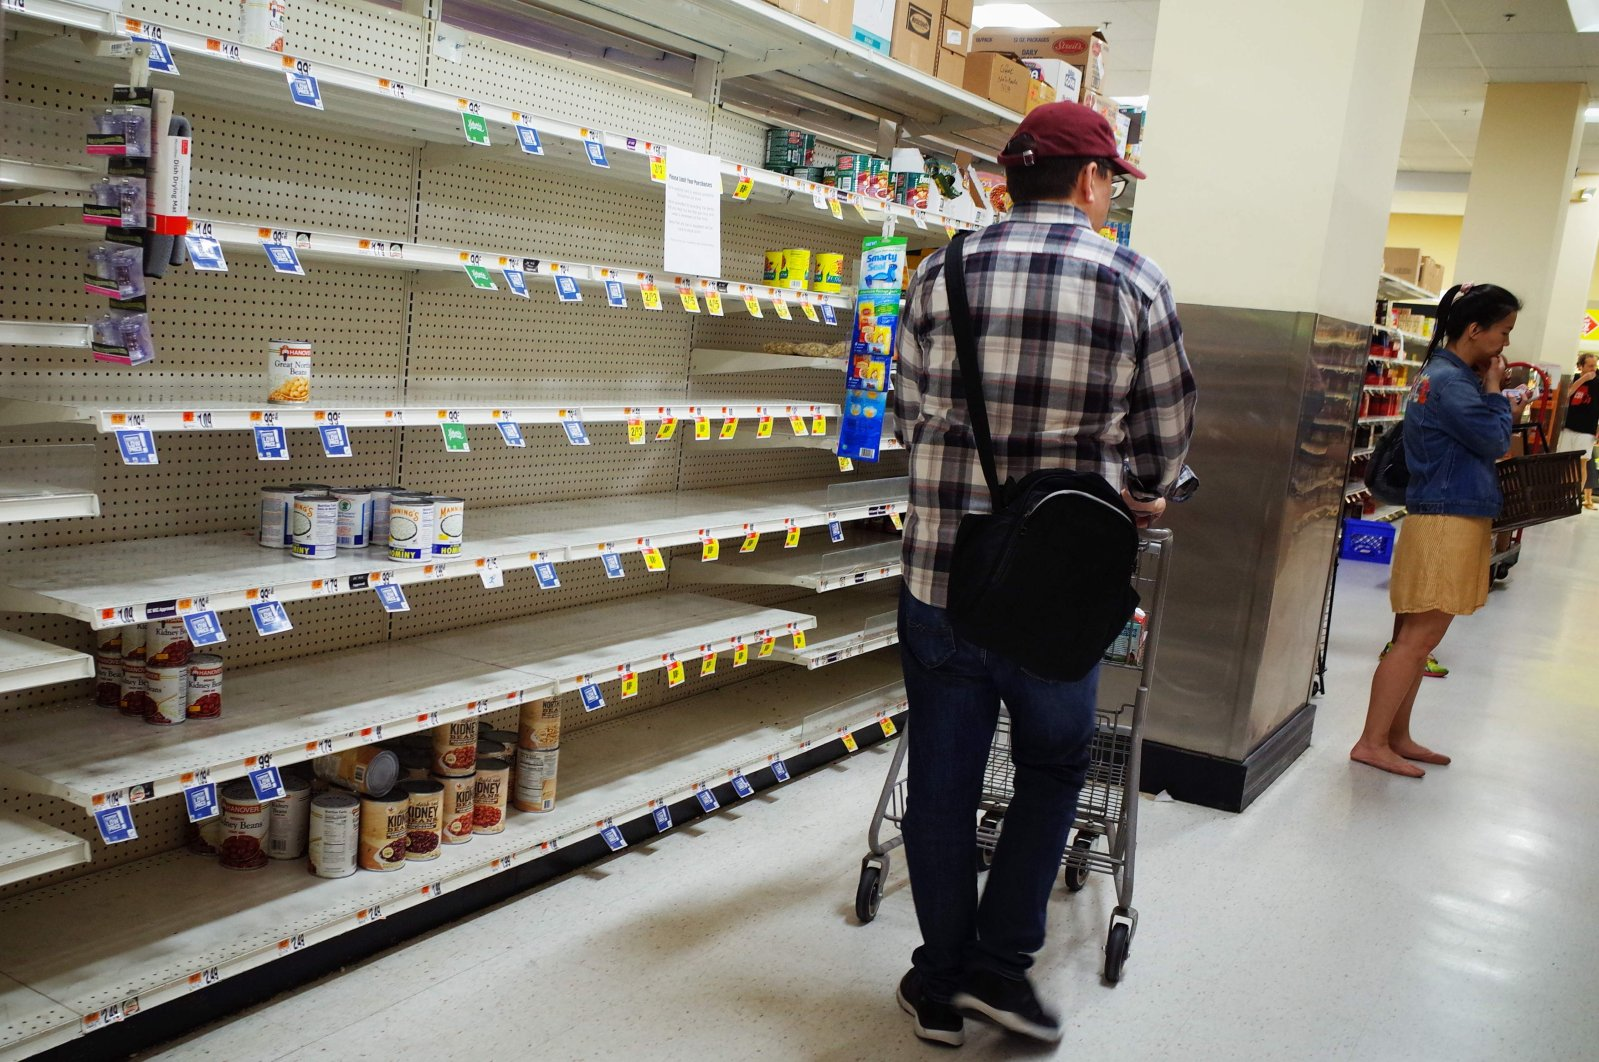 Shoppers are seen wandering next to near empty shelves for canned goods at a supermarket in Washington, DC on March 20, 2020. (AFP FIle Photo)